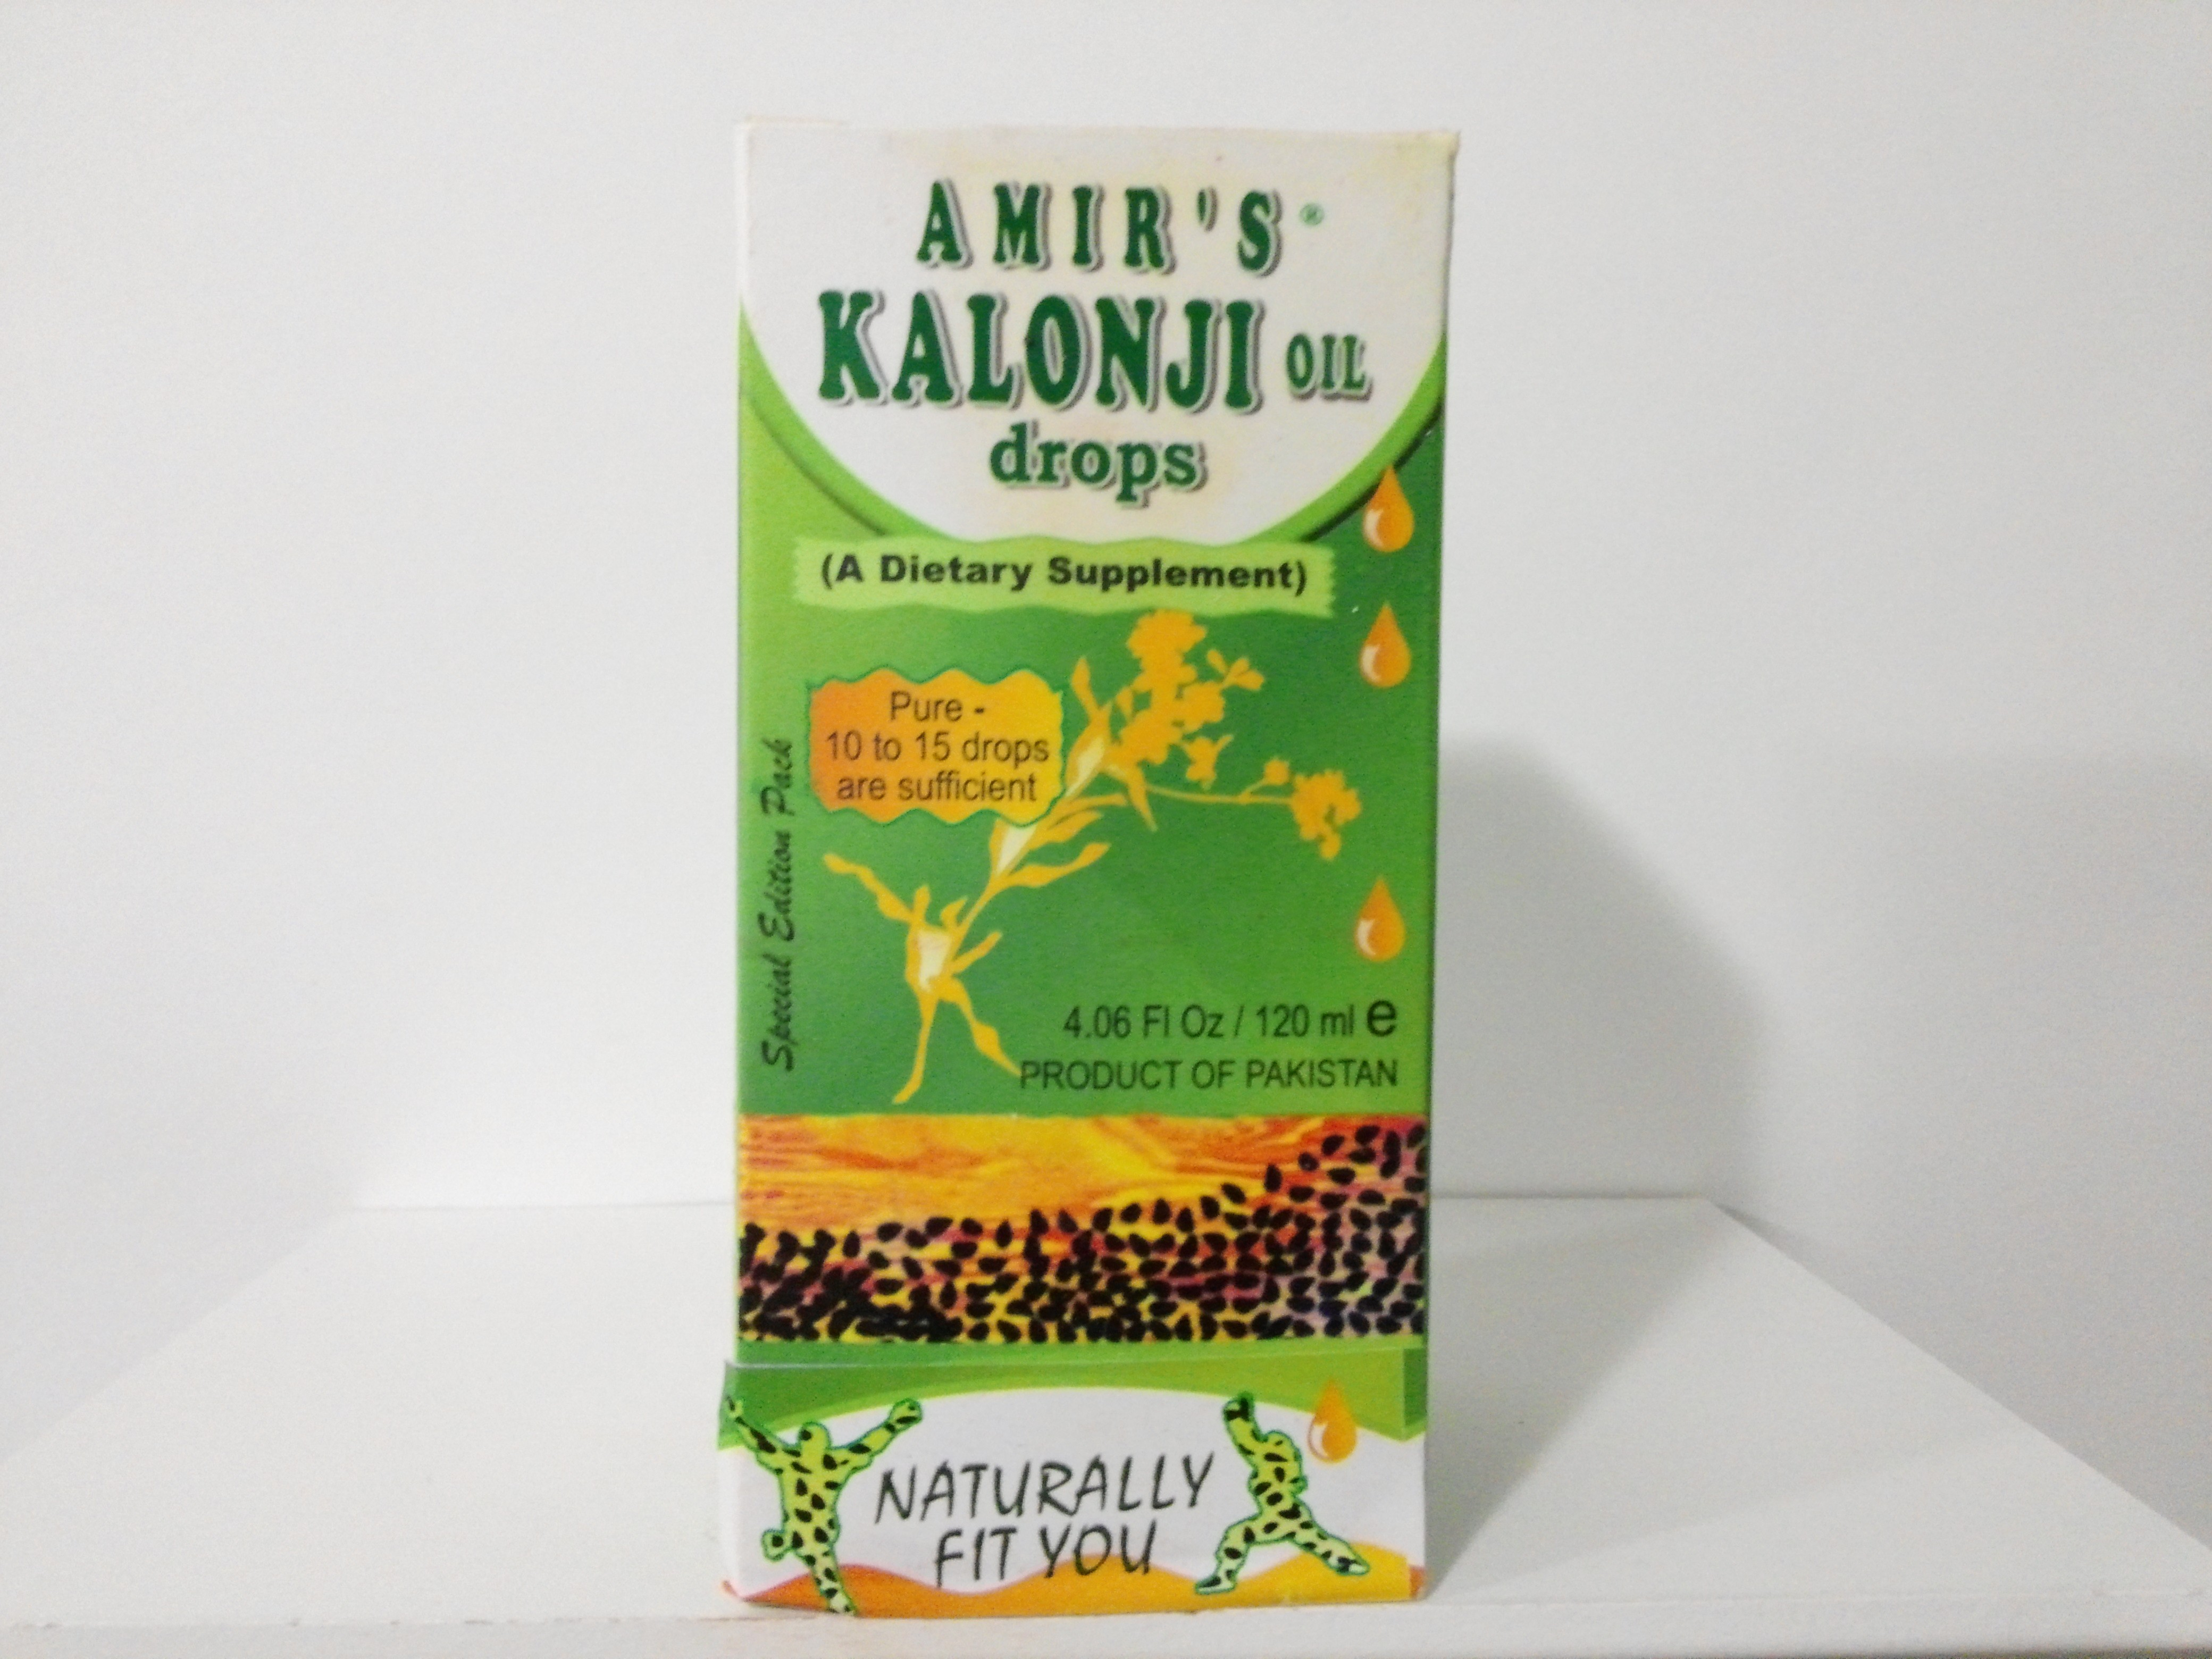 Amir's Kalonji Oil Drops 4.06 oz